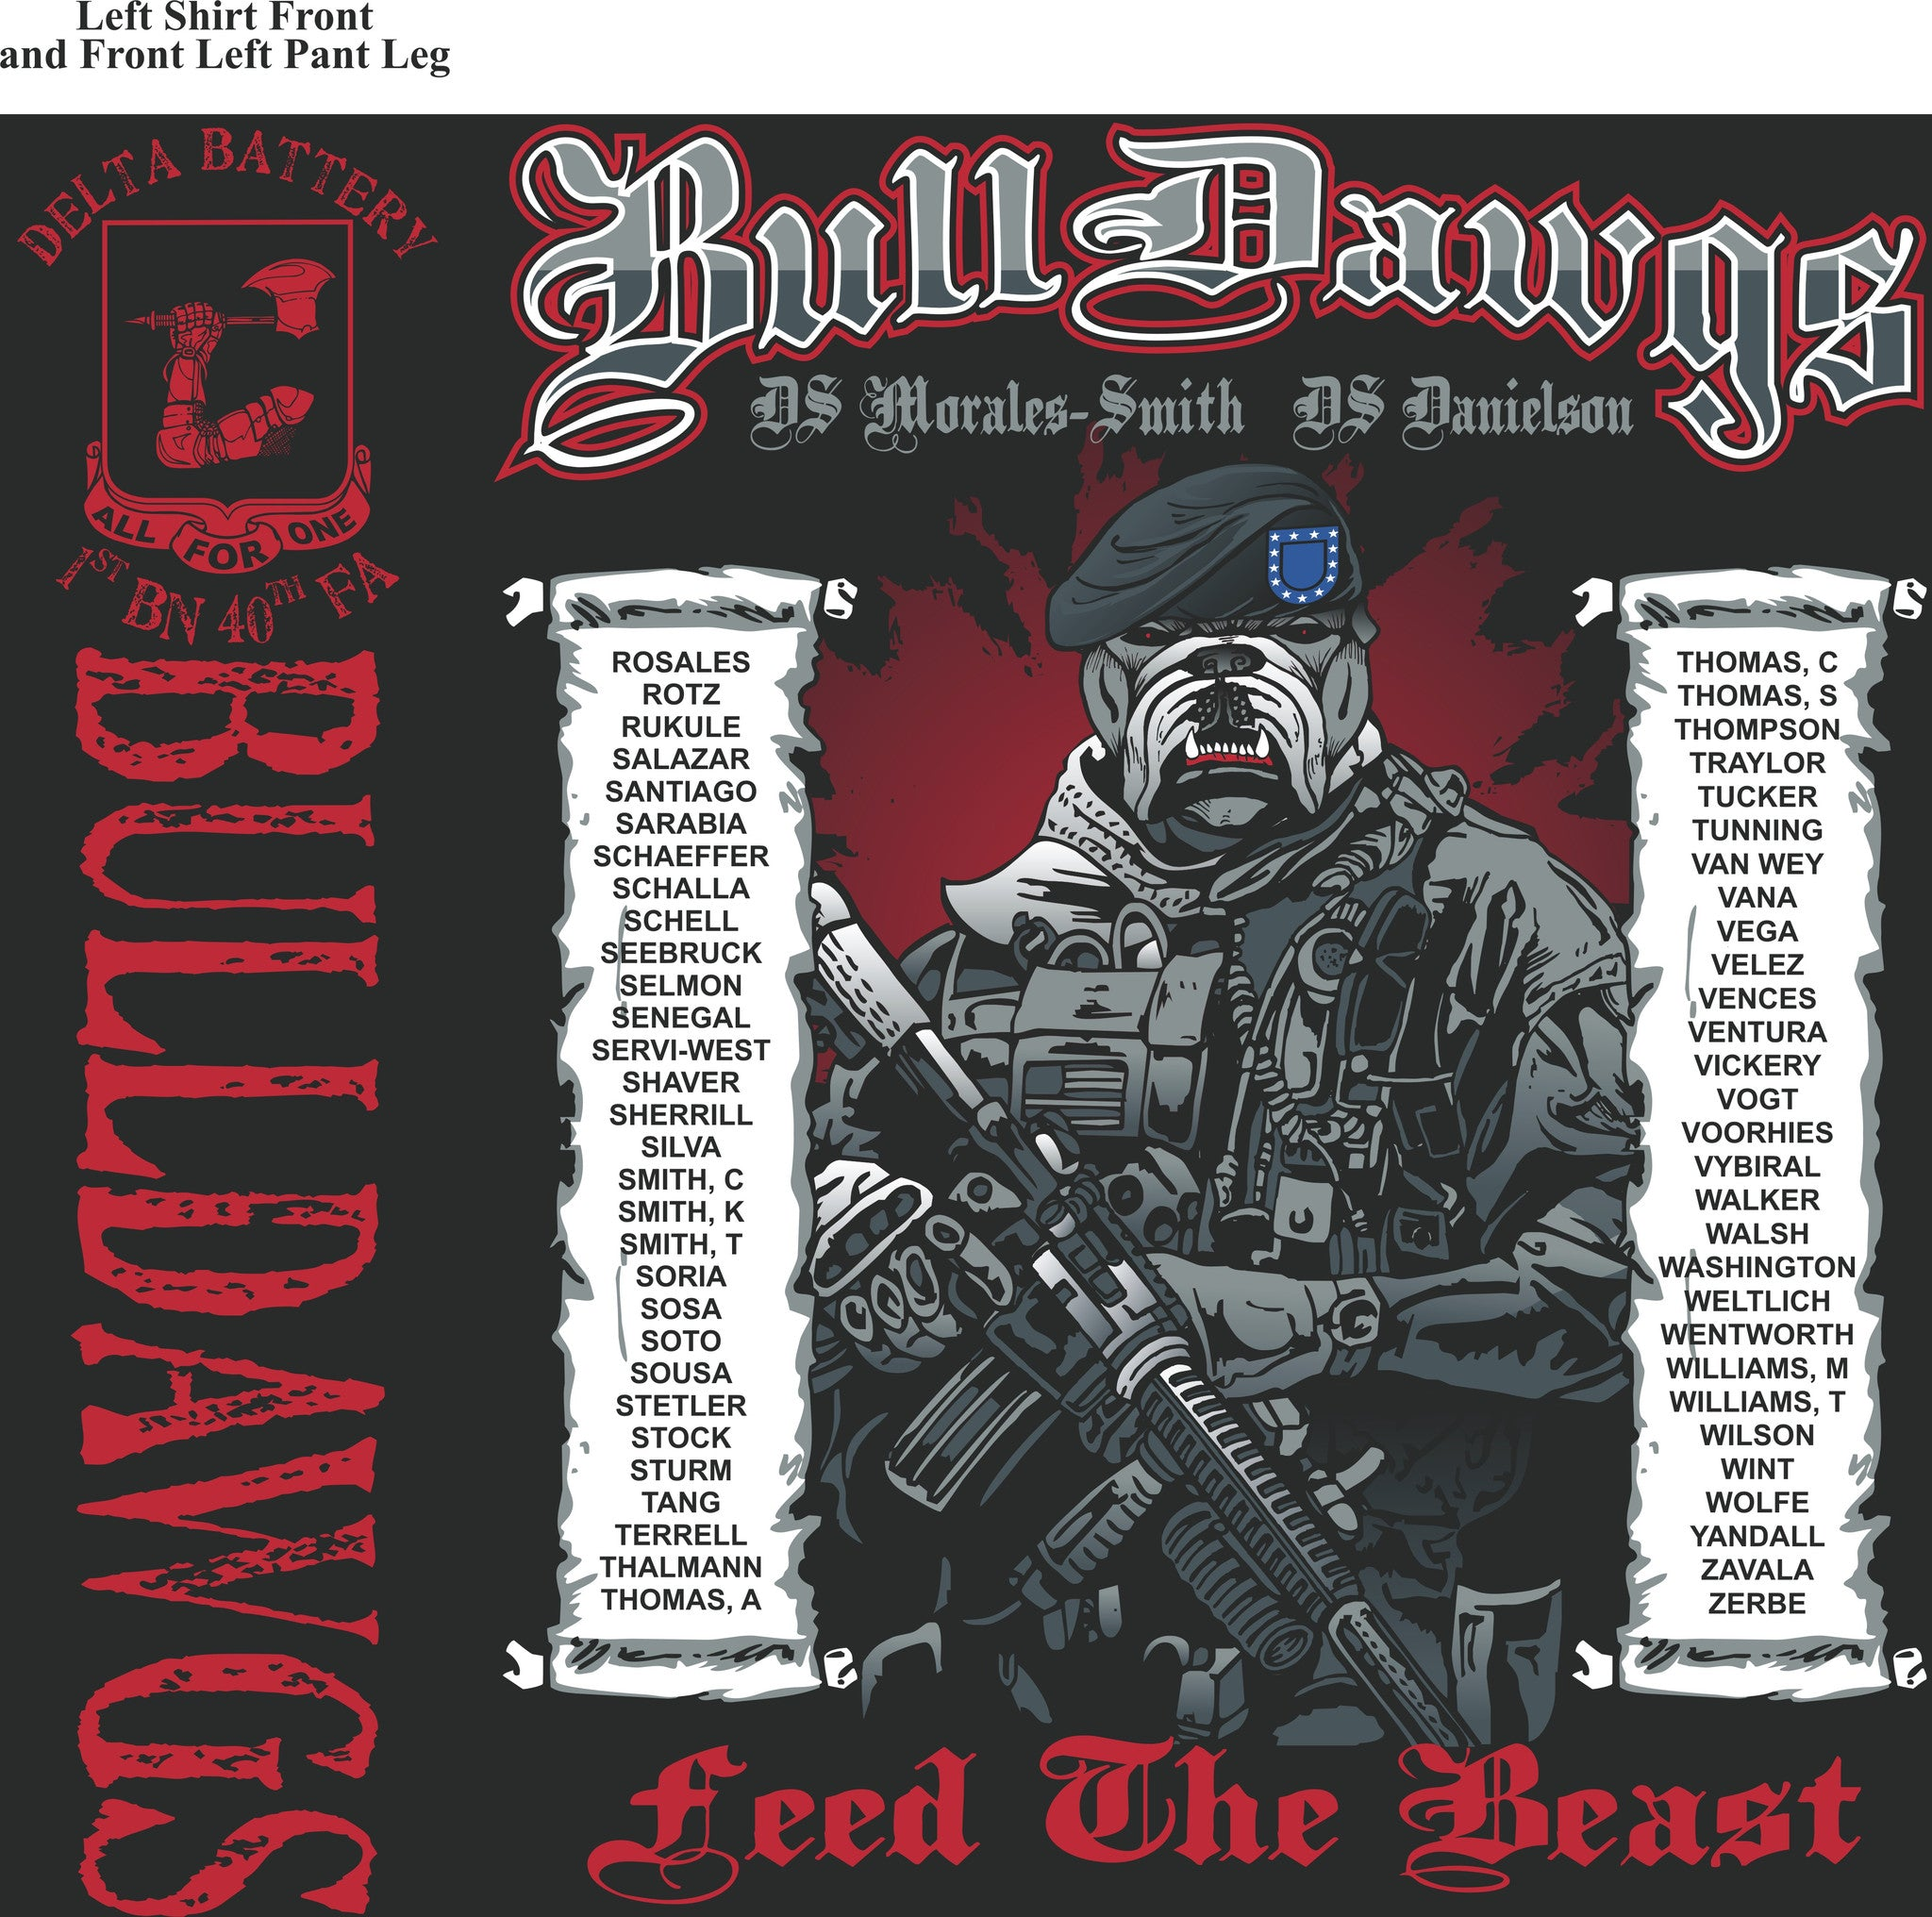 Platoon Shirts DELTA 1st 40th BULLDAWGS SEPT 2015